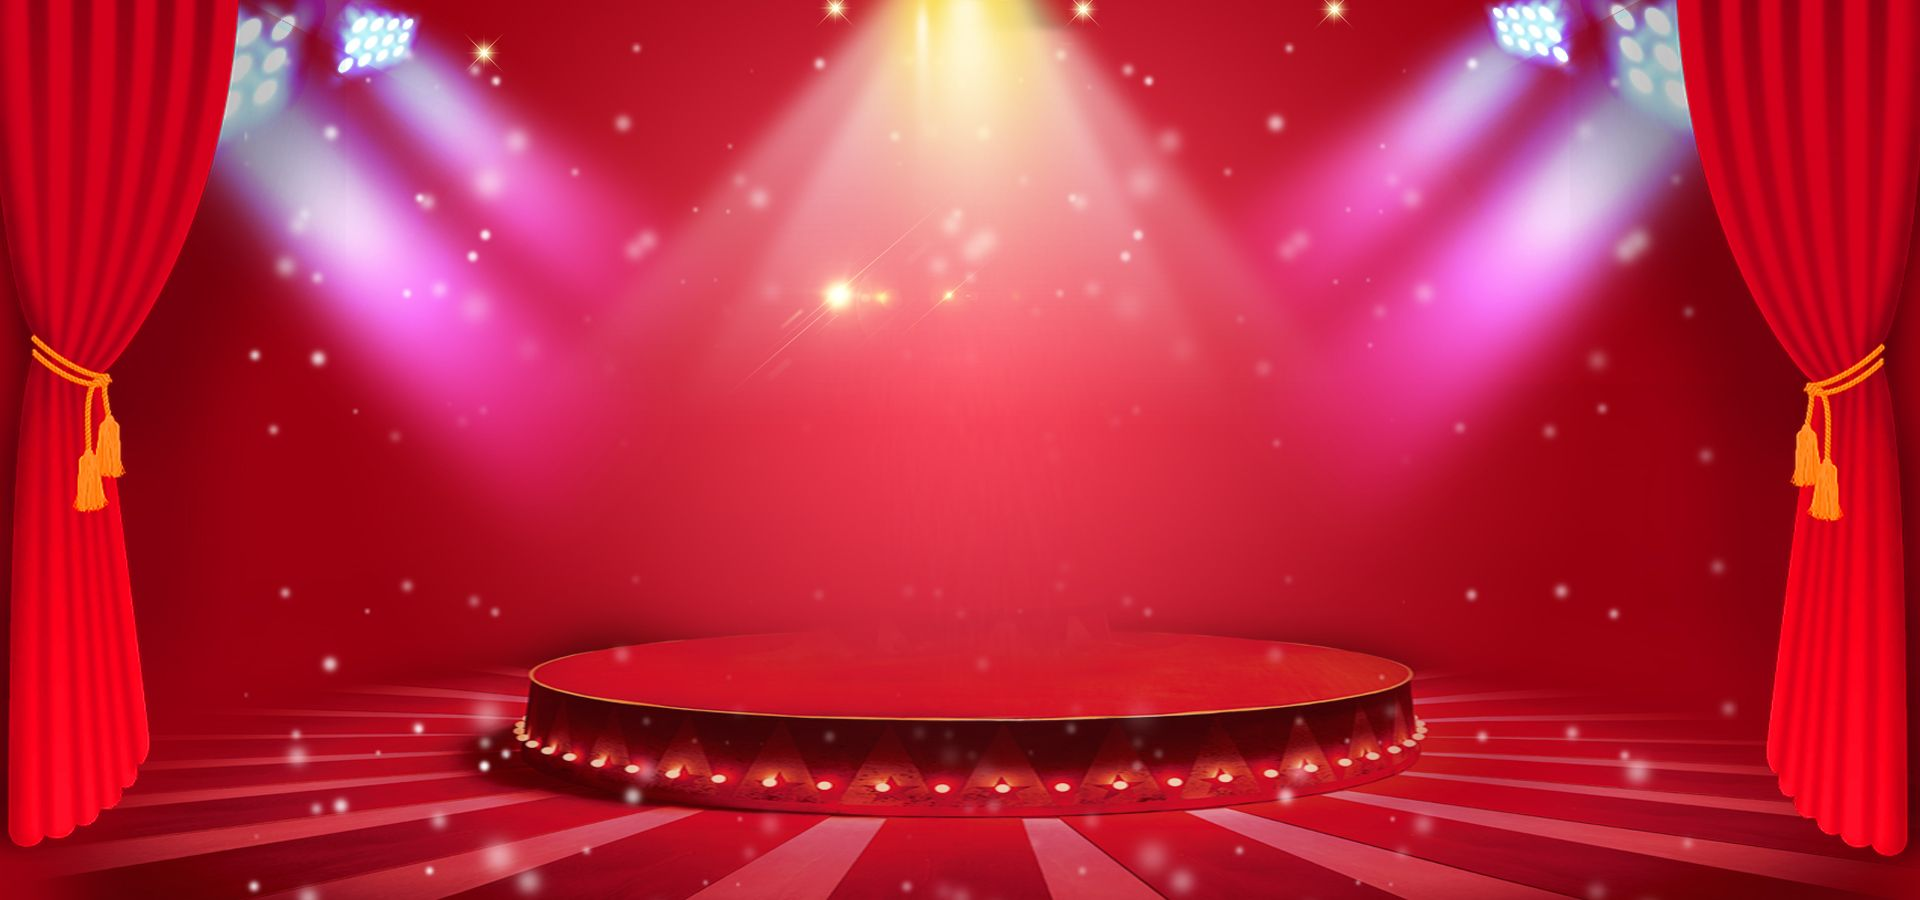 Atmospheric Stage Lighting Background Stage Lighting Hd Wallpapers 1080p Background